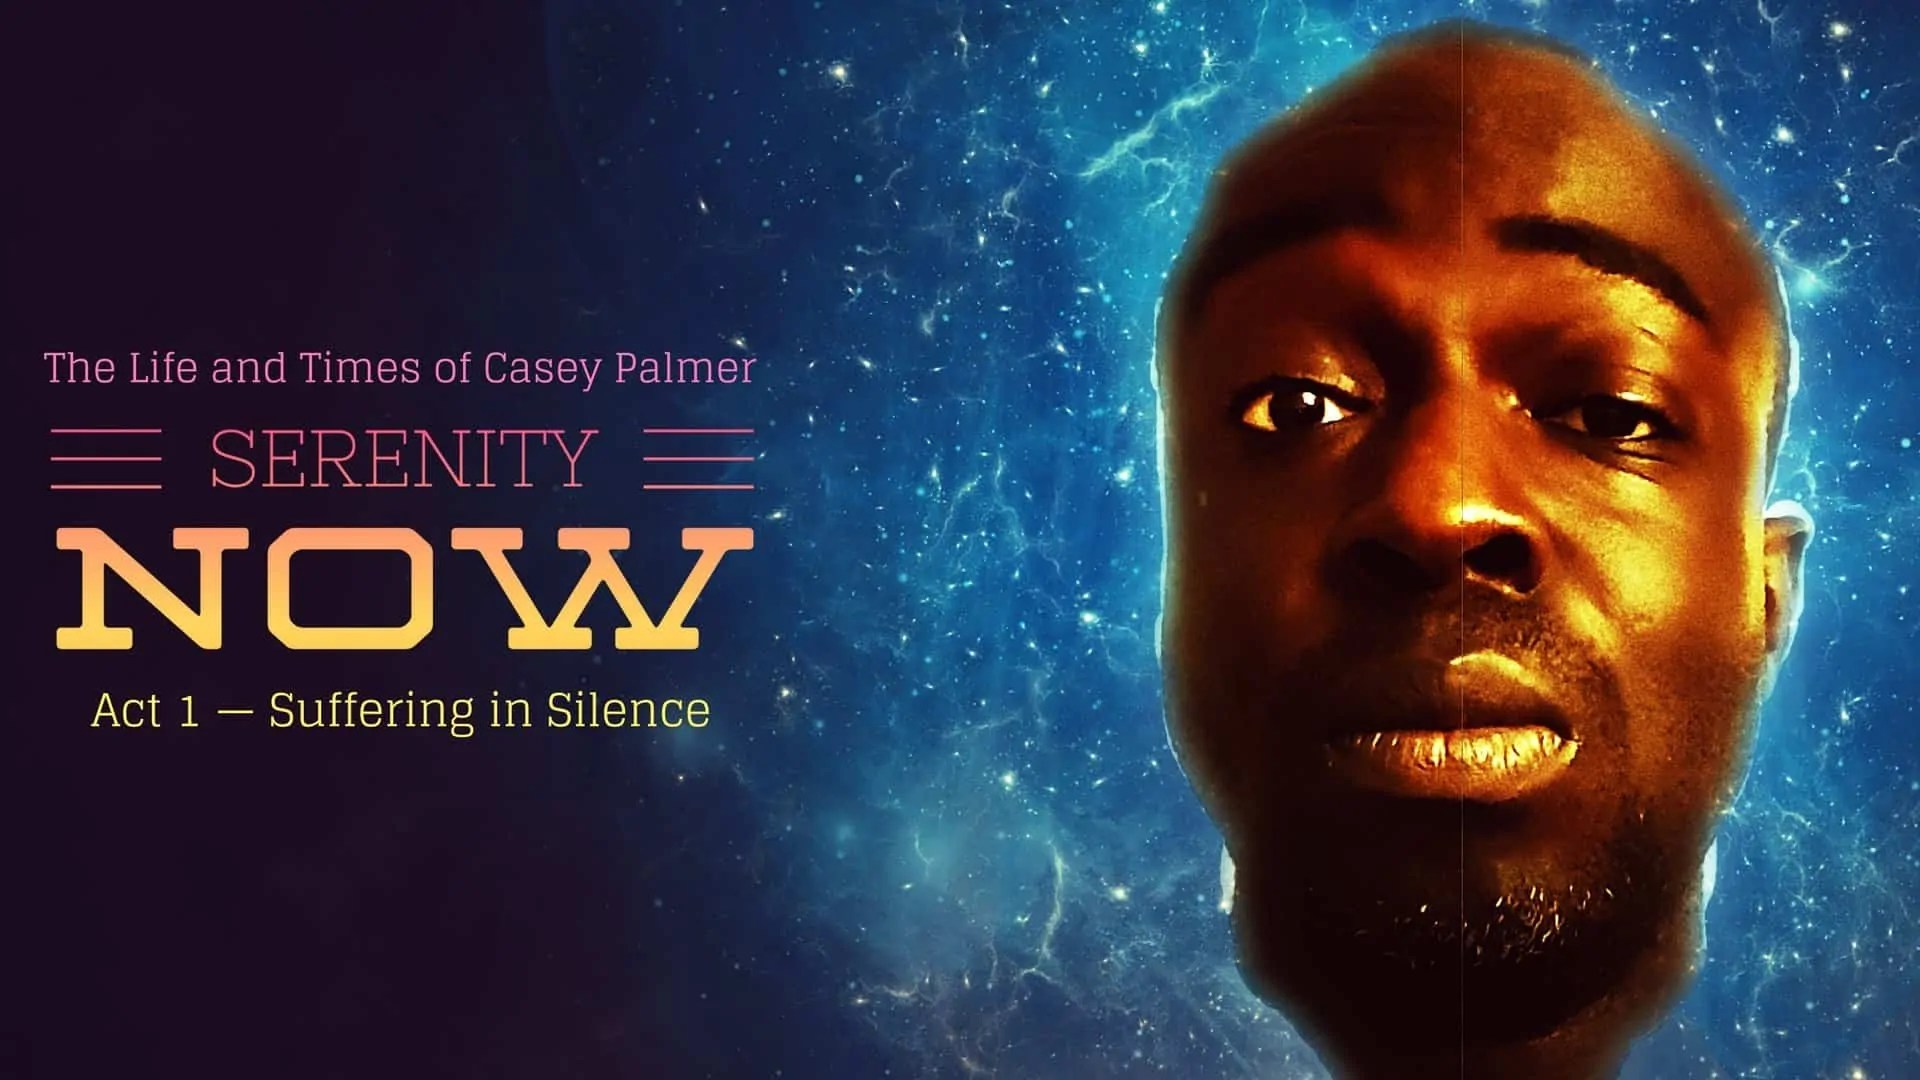 The Life and Times of Casey Palmer — SERENITY NOW- Act 1 — Suffering in Silence. (Featured Image)